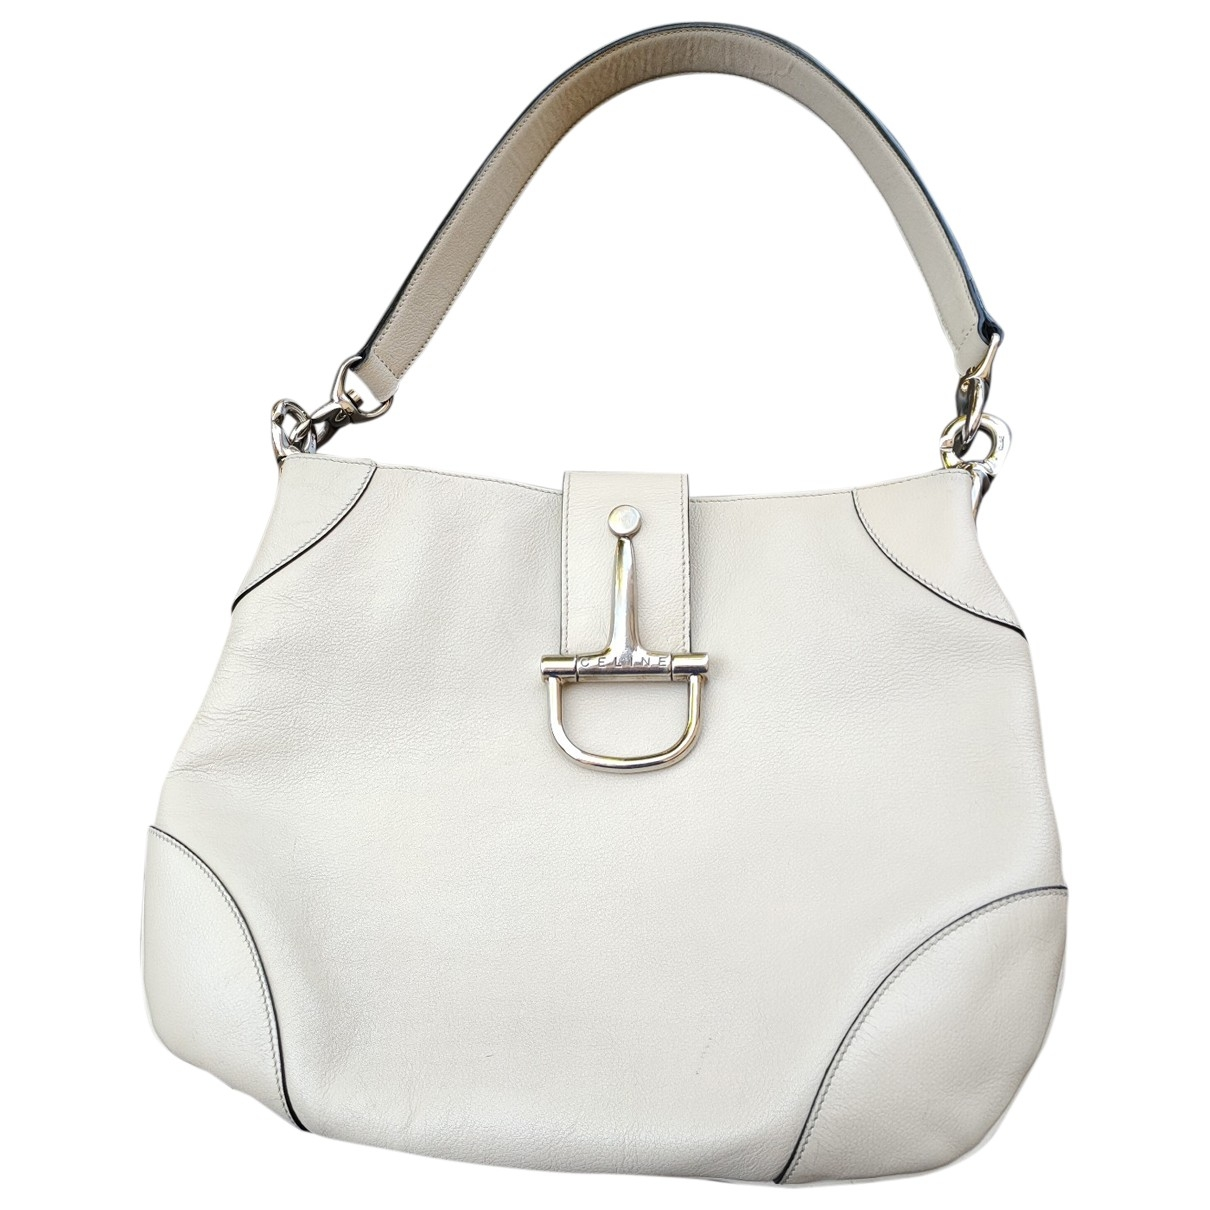 Celine \N Ecru Leather handbag for Women \N